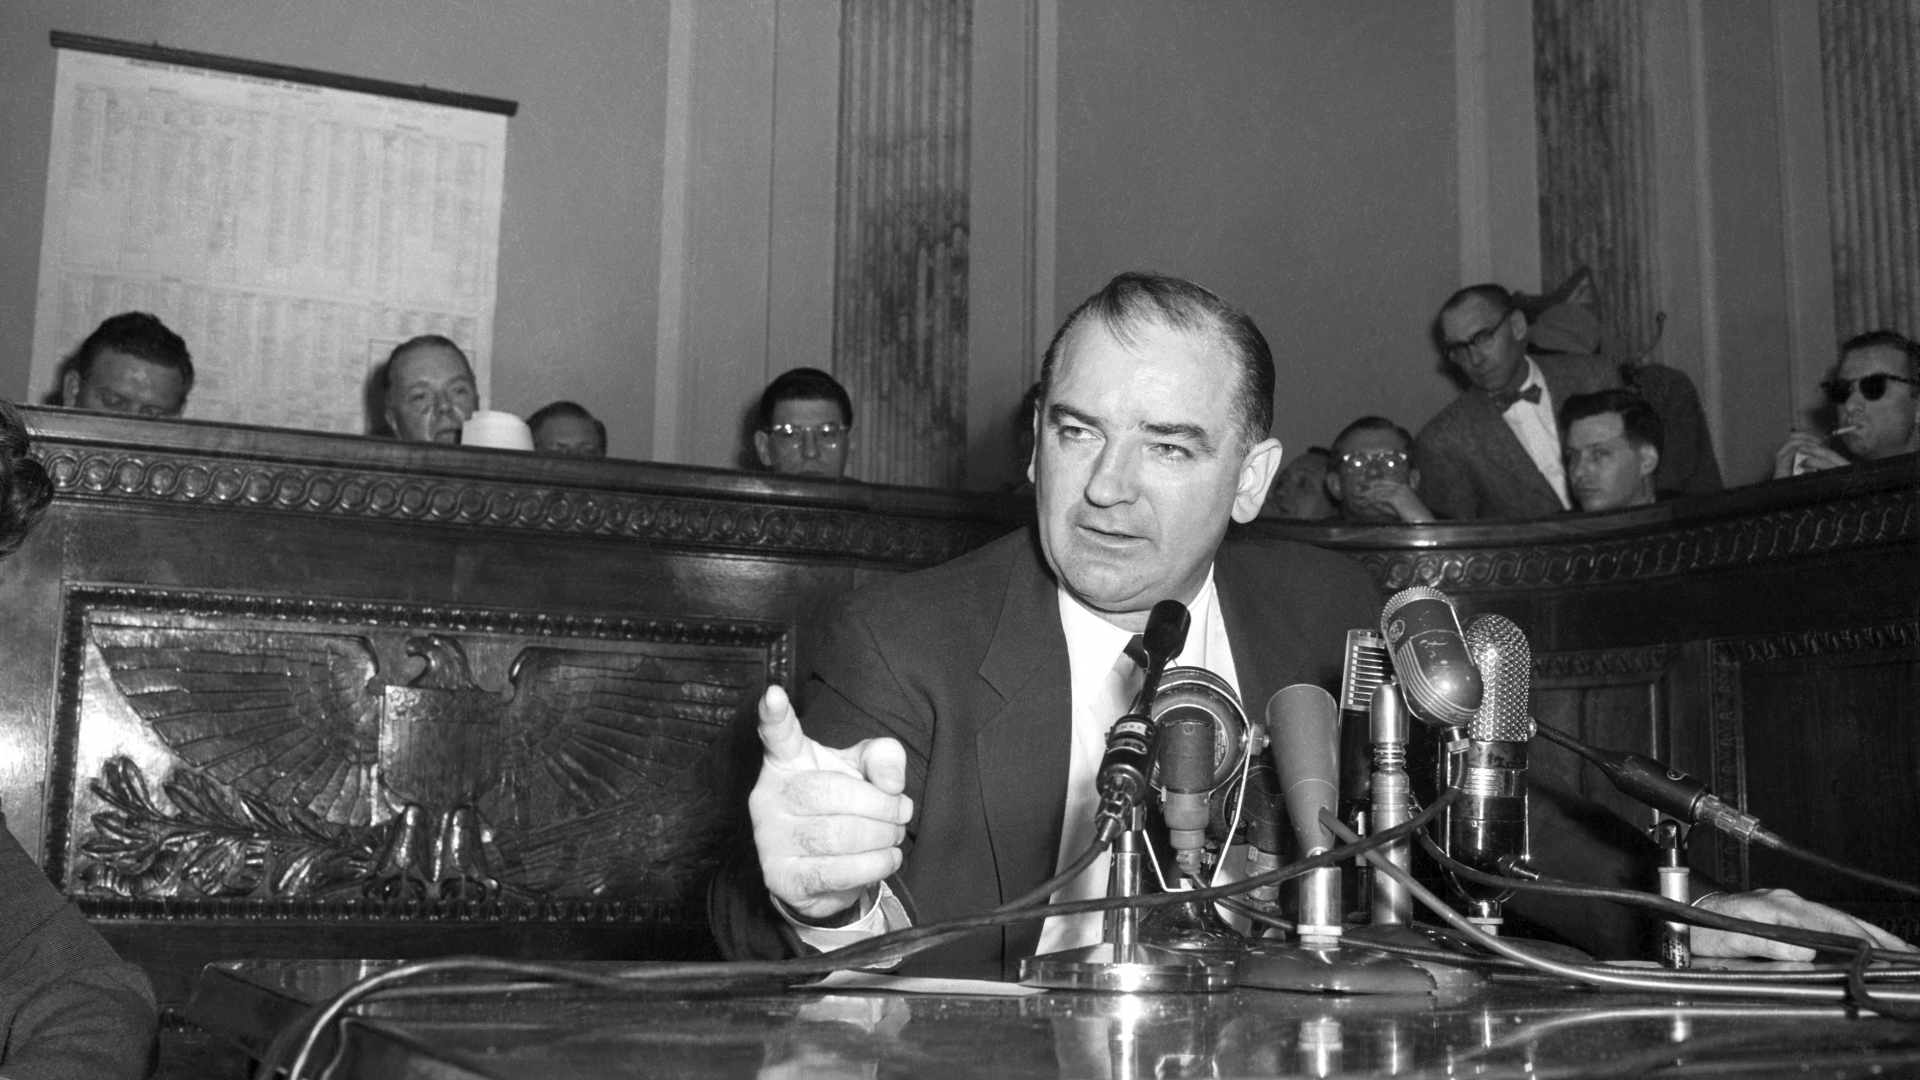 Senator Joseph McCarthy, best known for his wide-ranging witch hunt to root out communism in postwar America, fomented fear and disapproval of elites. He especially denounced the 'egg-sucking phony liberals' who defended 'communists and queers.' (Credit: Bettmann Archive/Getty Images)